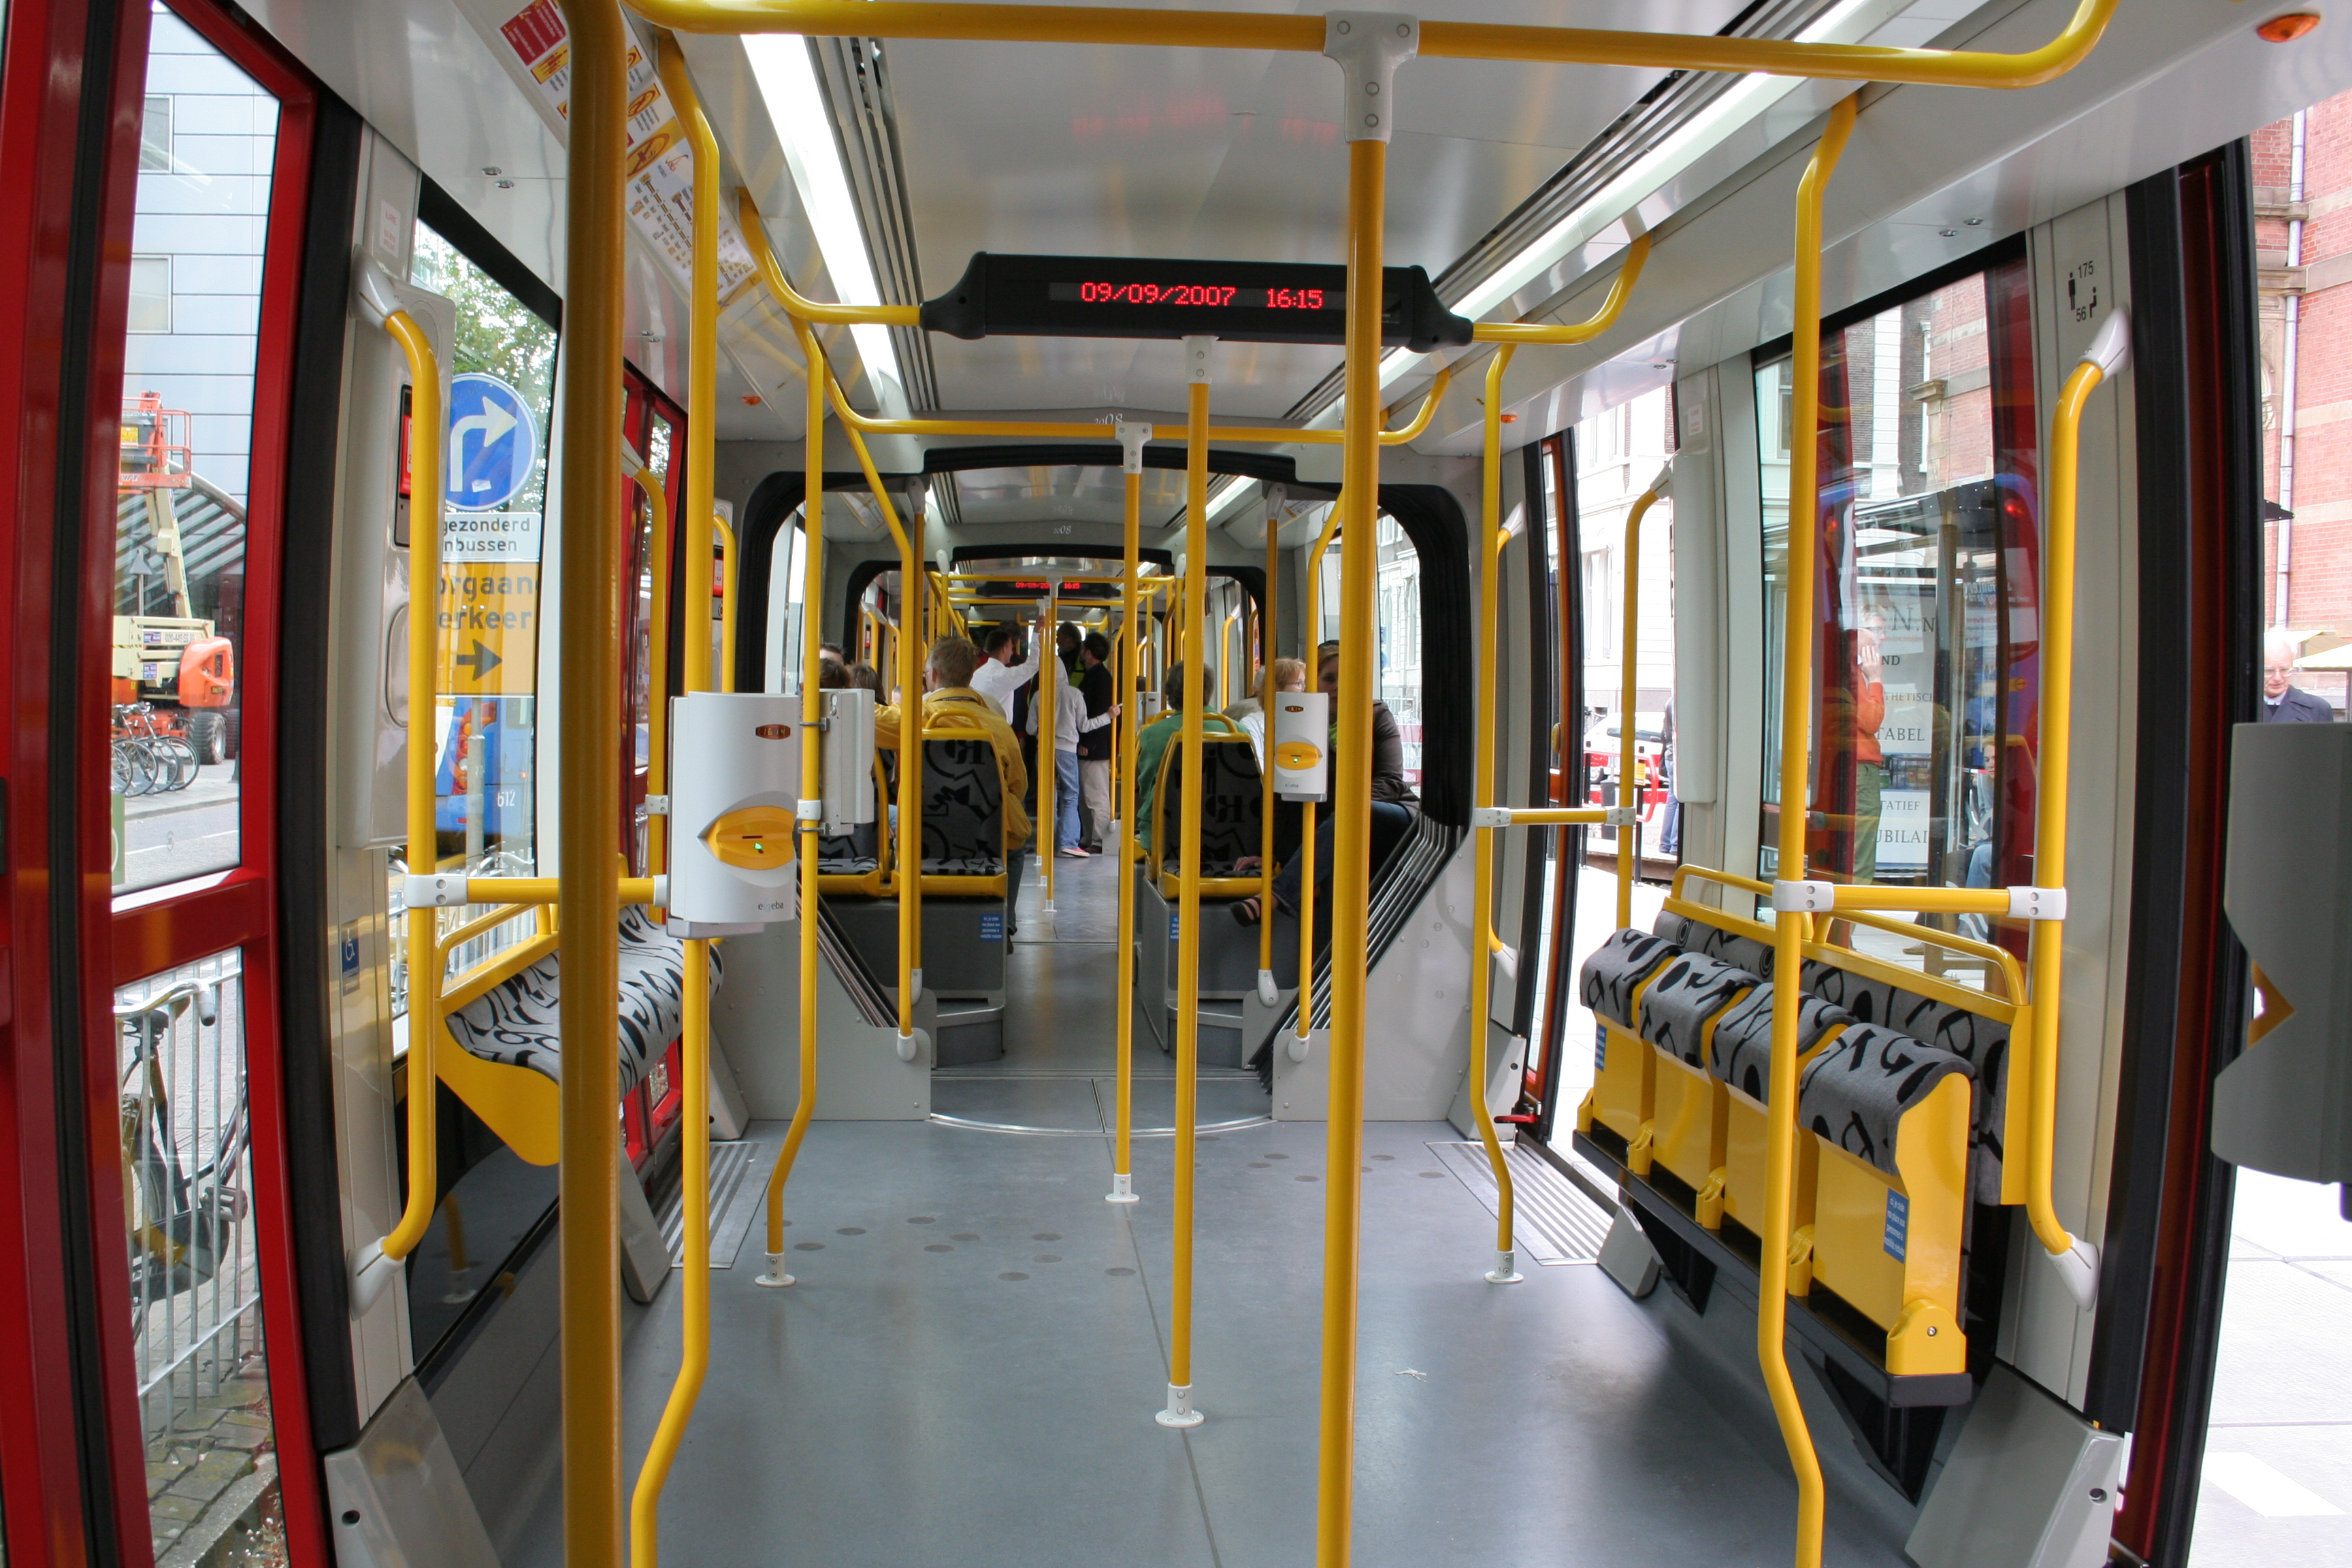 Bestand interieur tram mulhouse jpg wikipedia for Interieur wikipedia